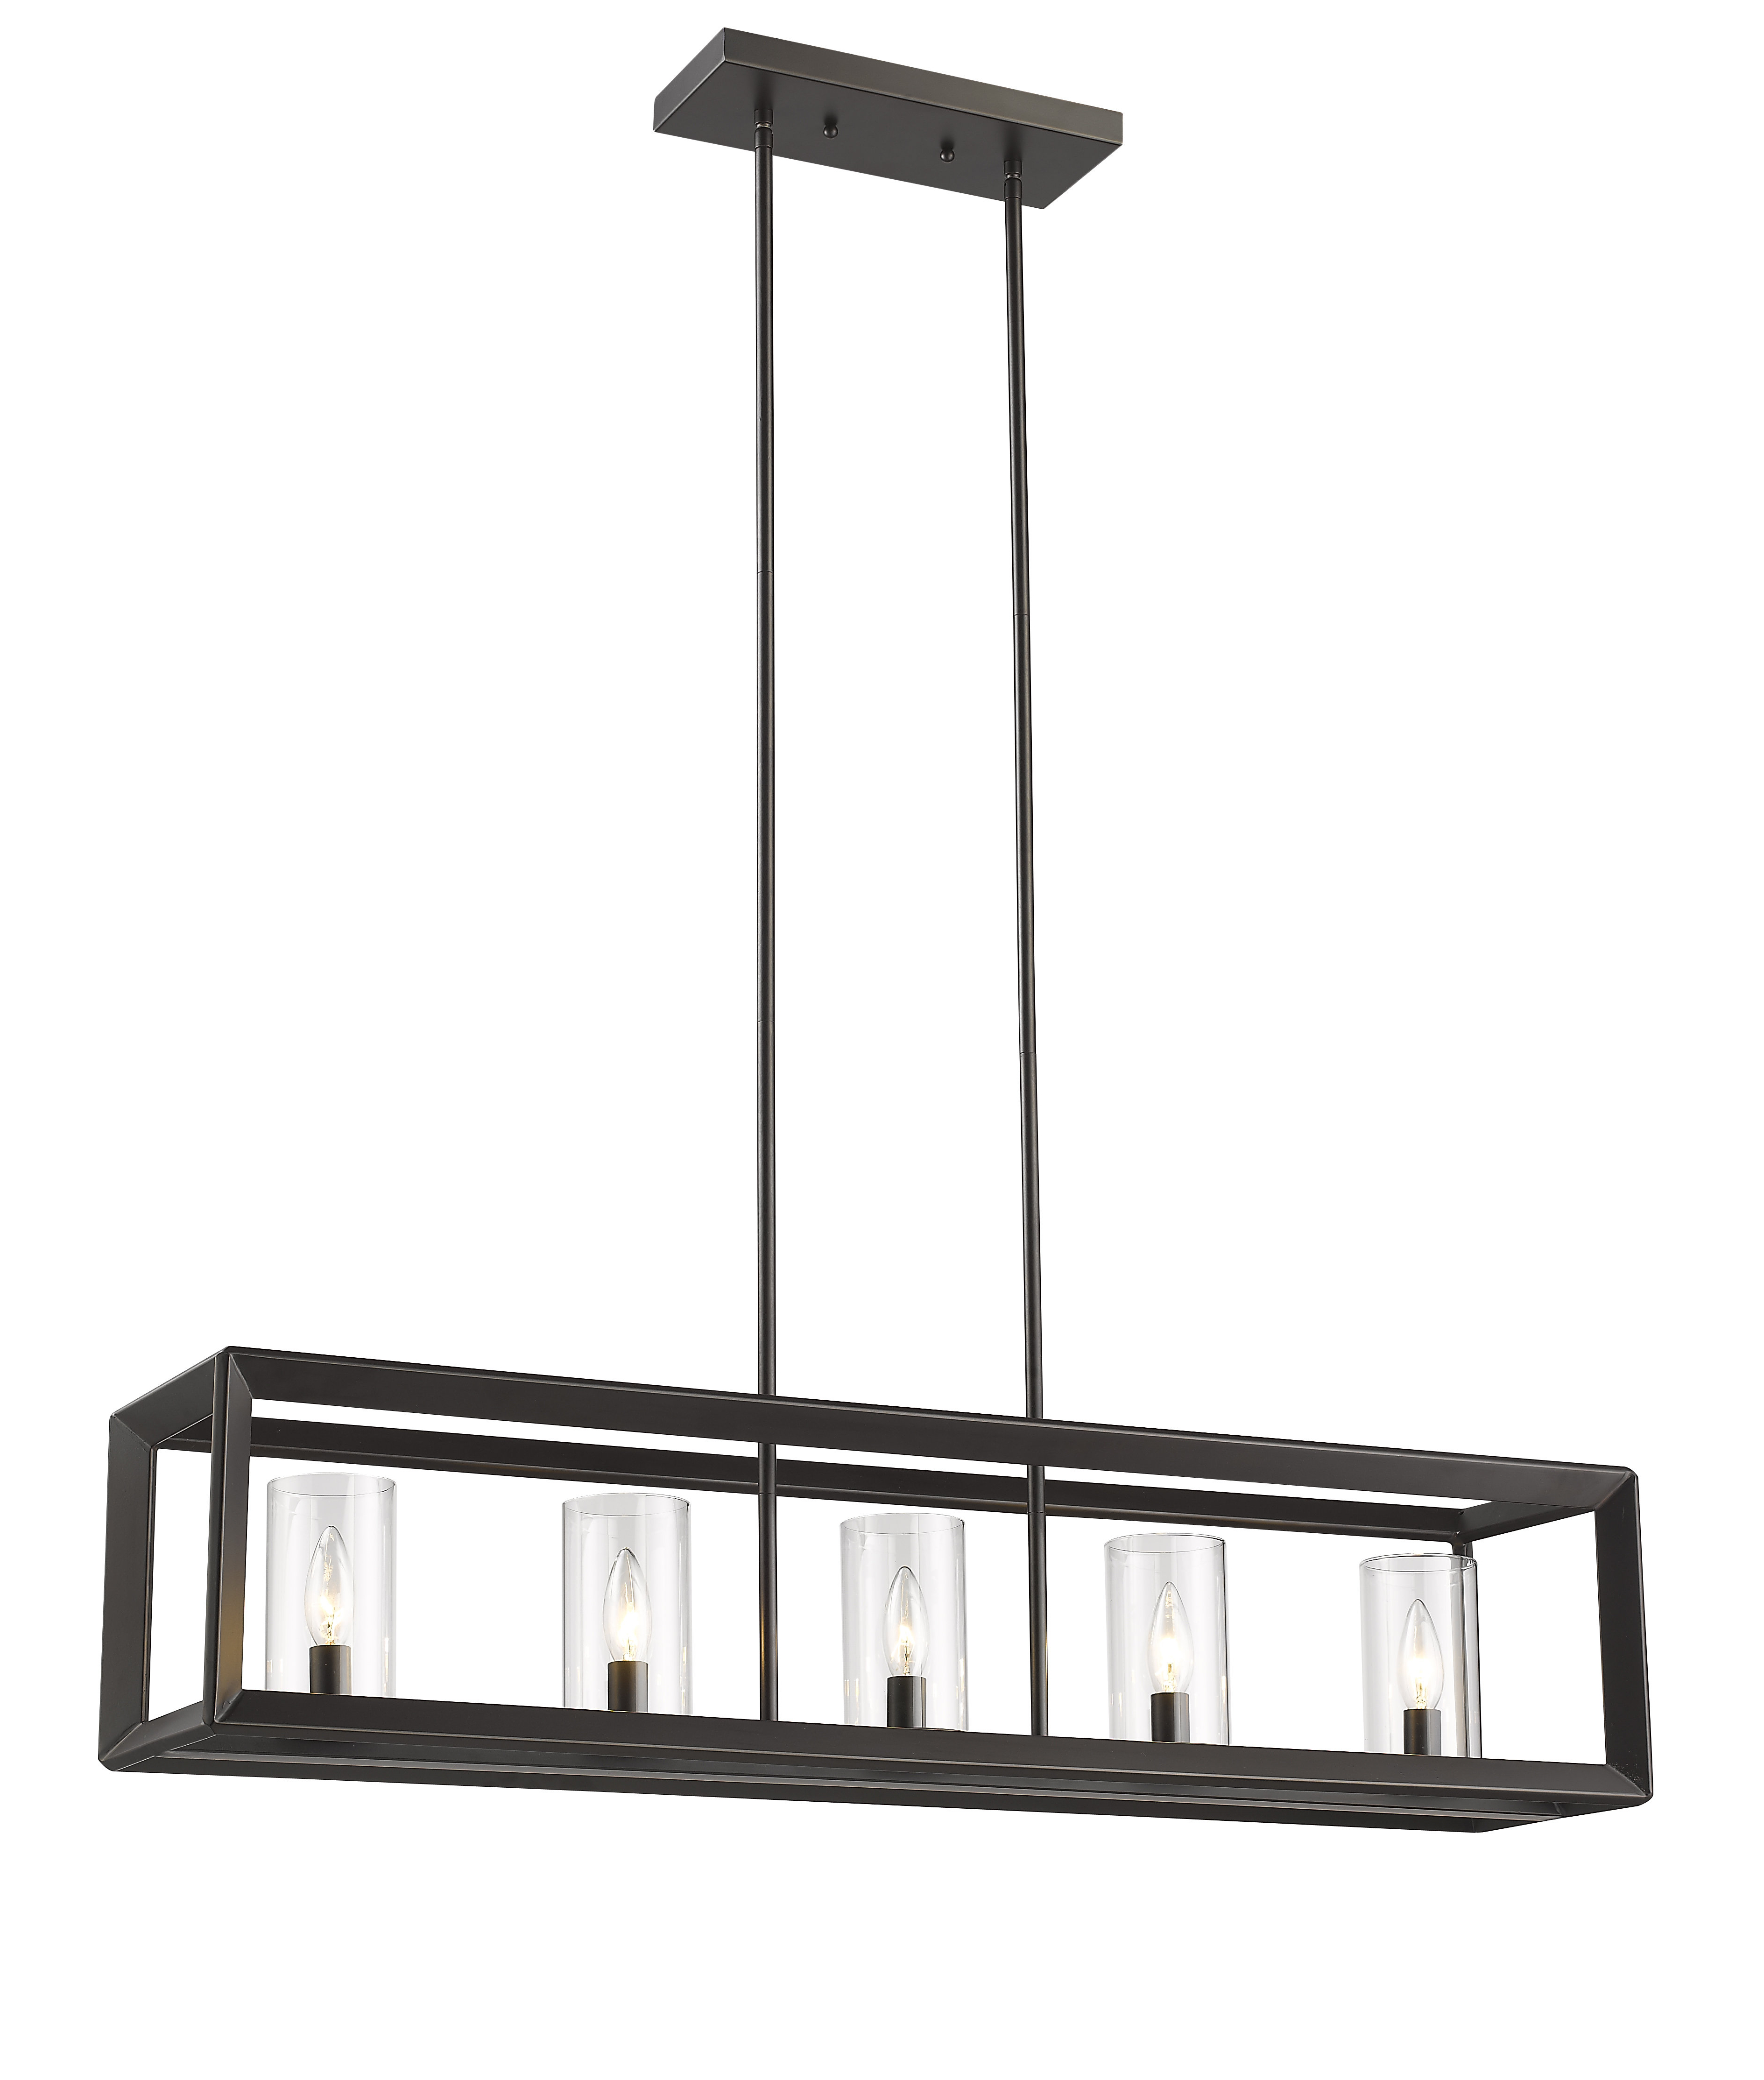 Odie 8 Light Kitchen Island Square / Rectangle Pendants Pertaining To Most Up To Date Vandoren Canyon 5 Light Kitchen Island Linear Pendant (View 16 of 25)